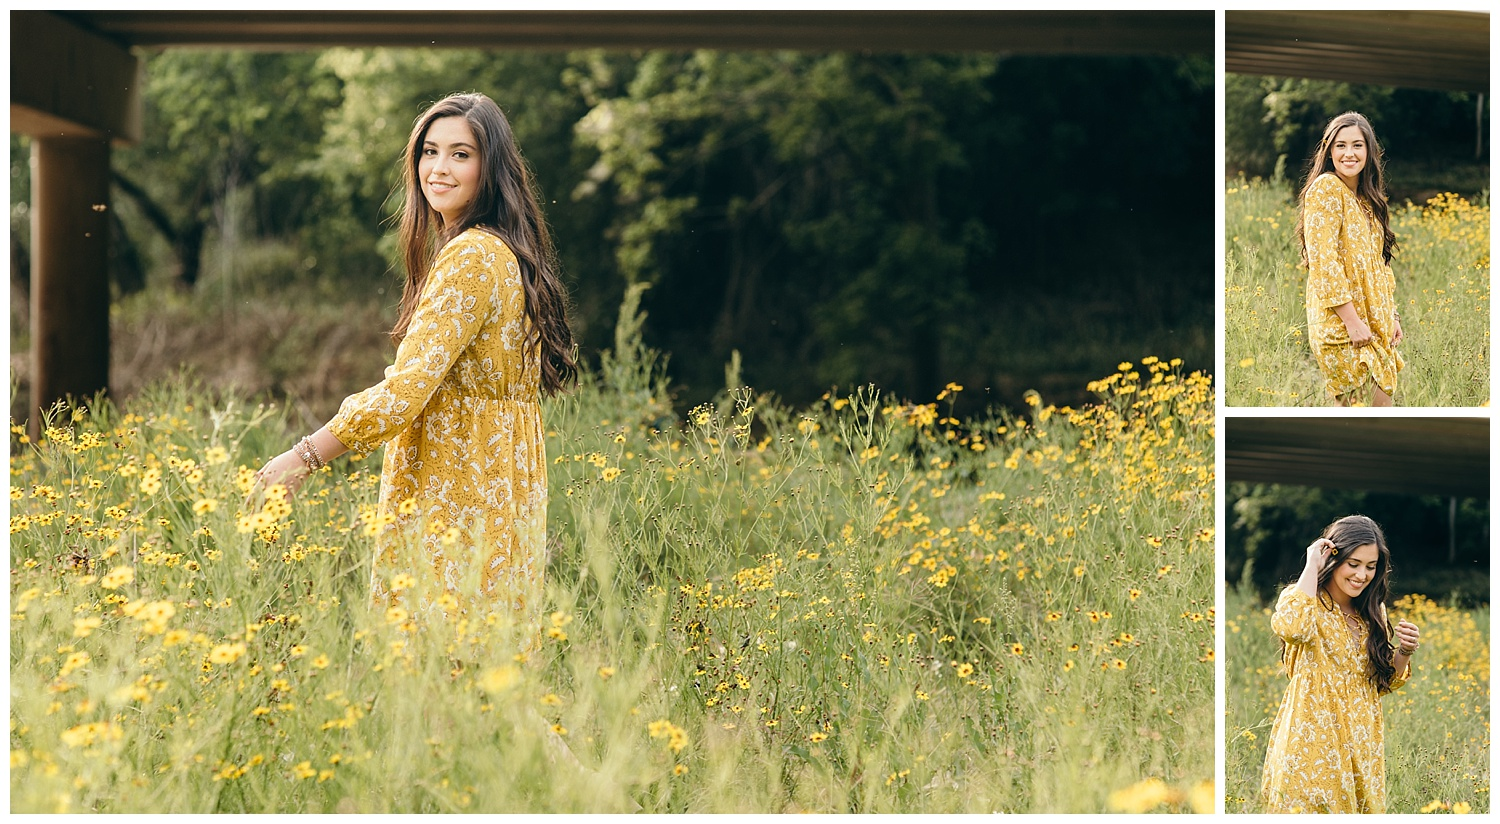 senior girl in a yellow dress in a yellow field of flowers